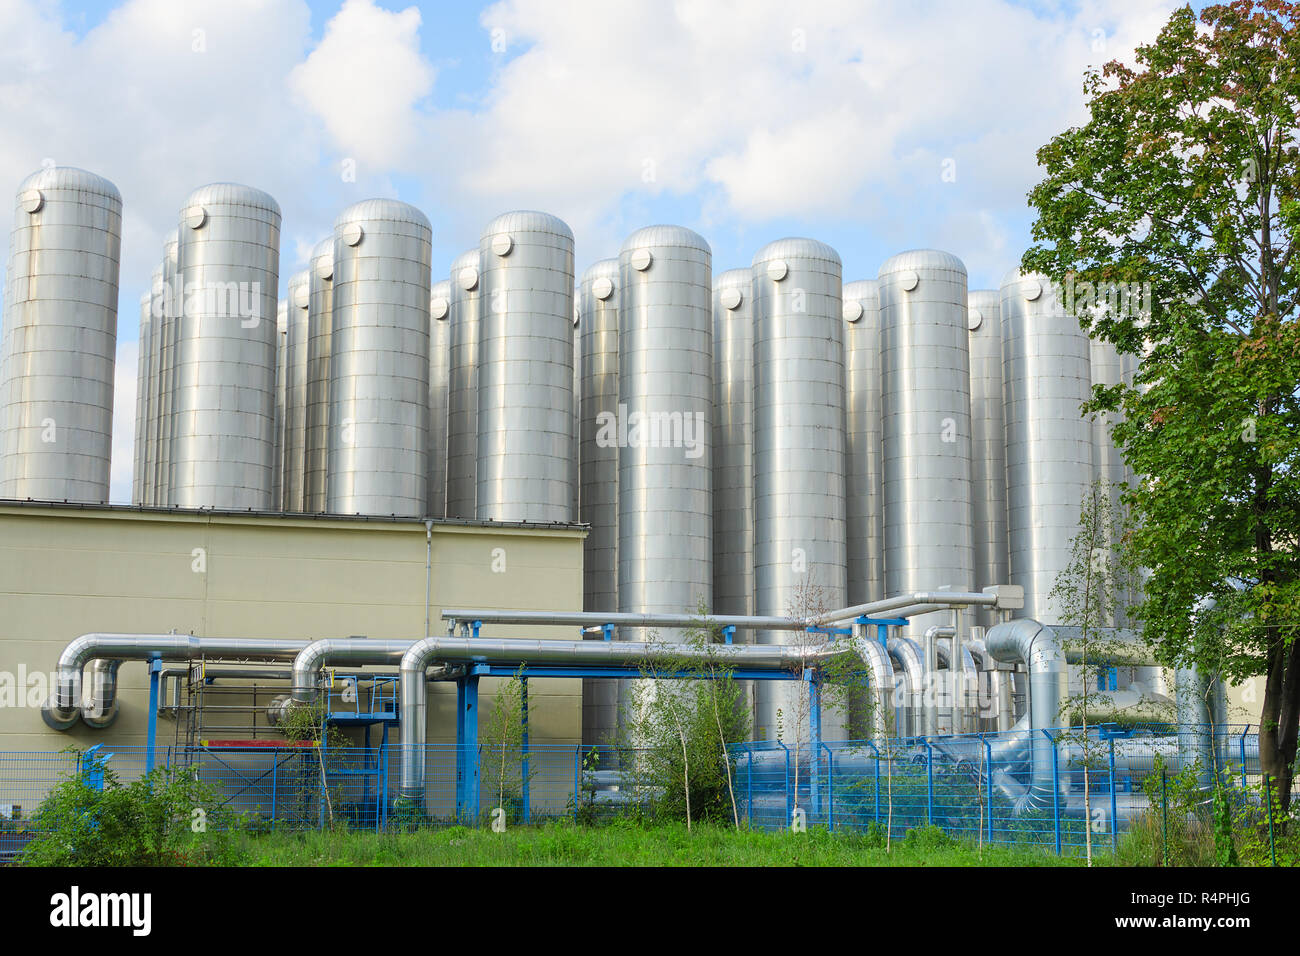 Industrial sewage treatment system for water purification - Stock Image